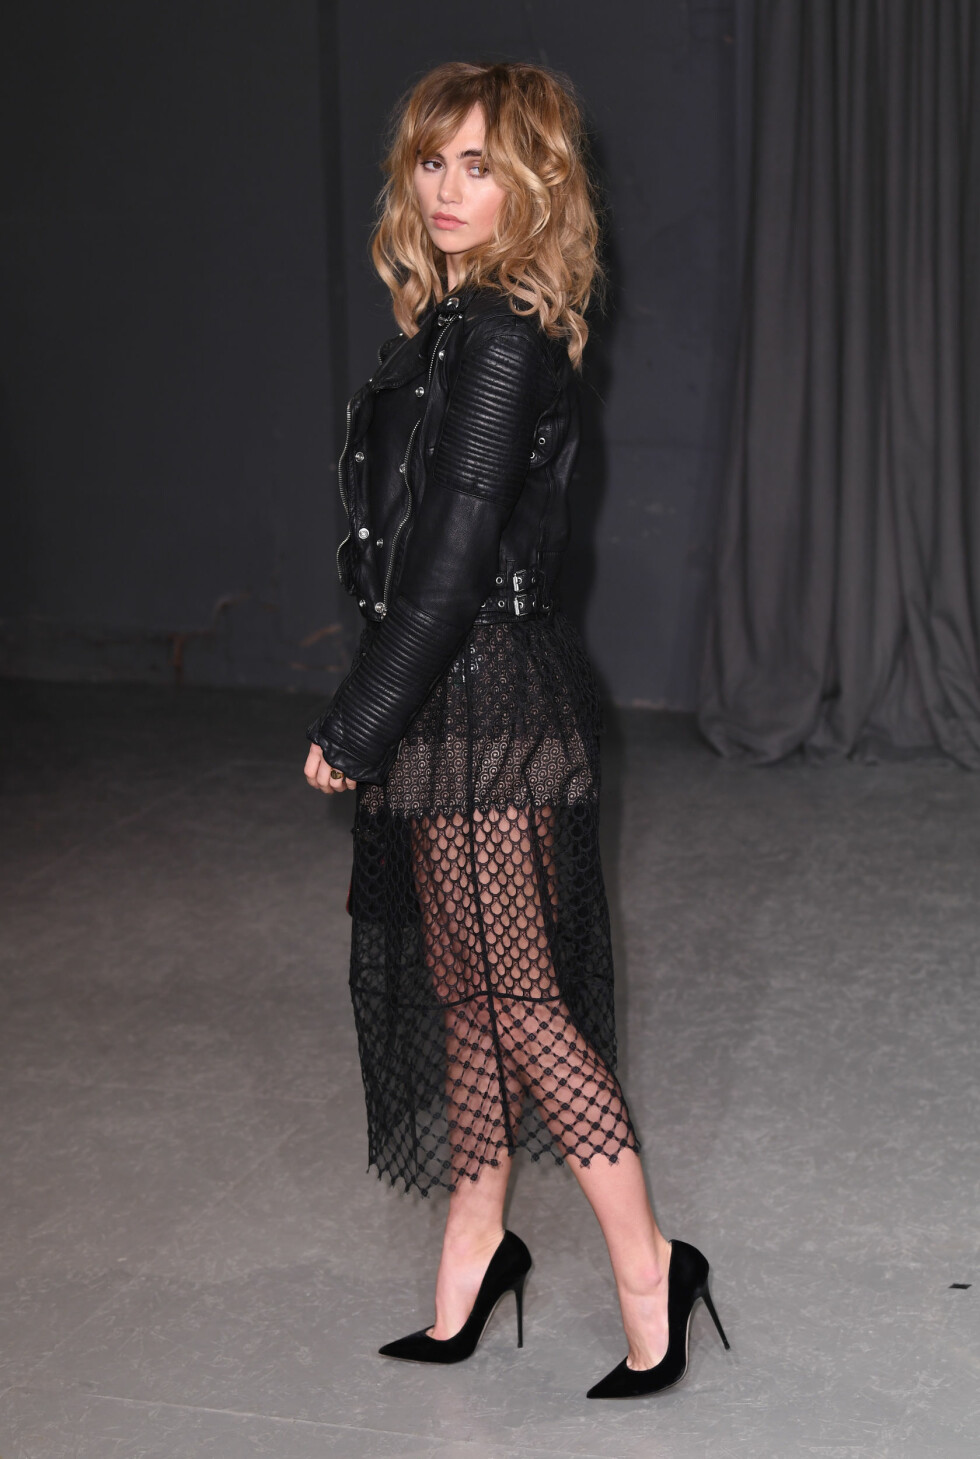 Suki Waterhouse Foto: Pa Photos